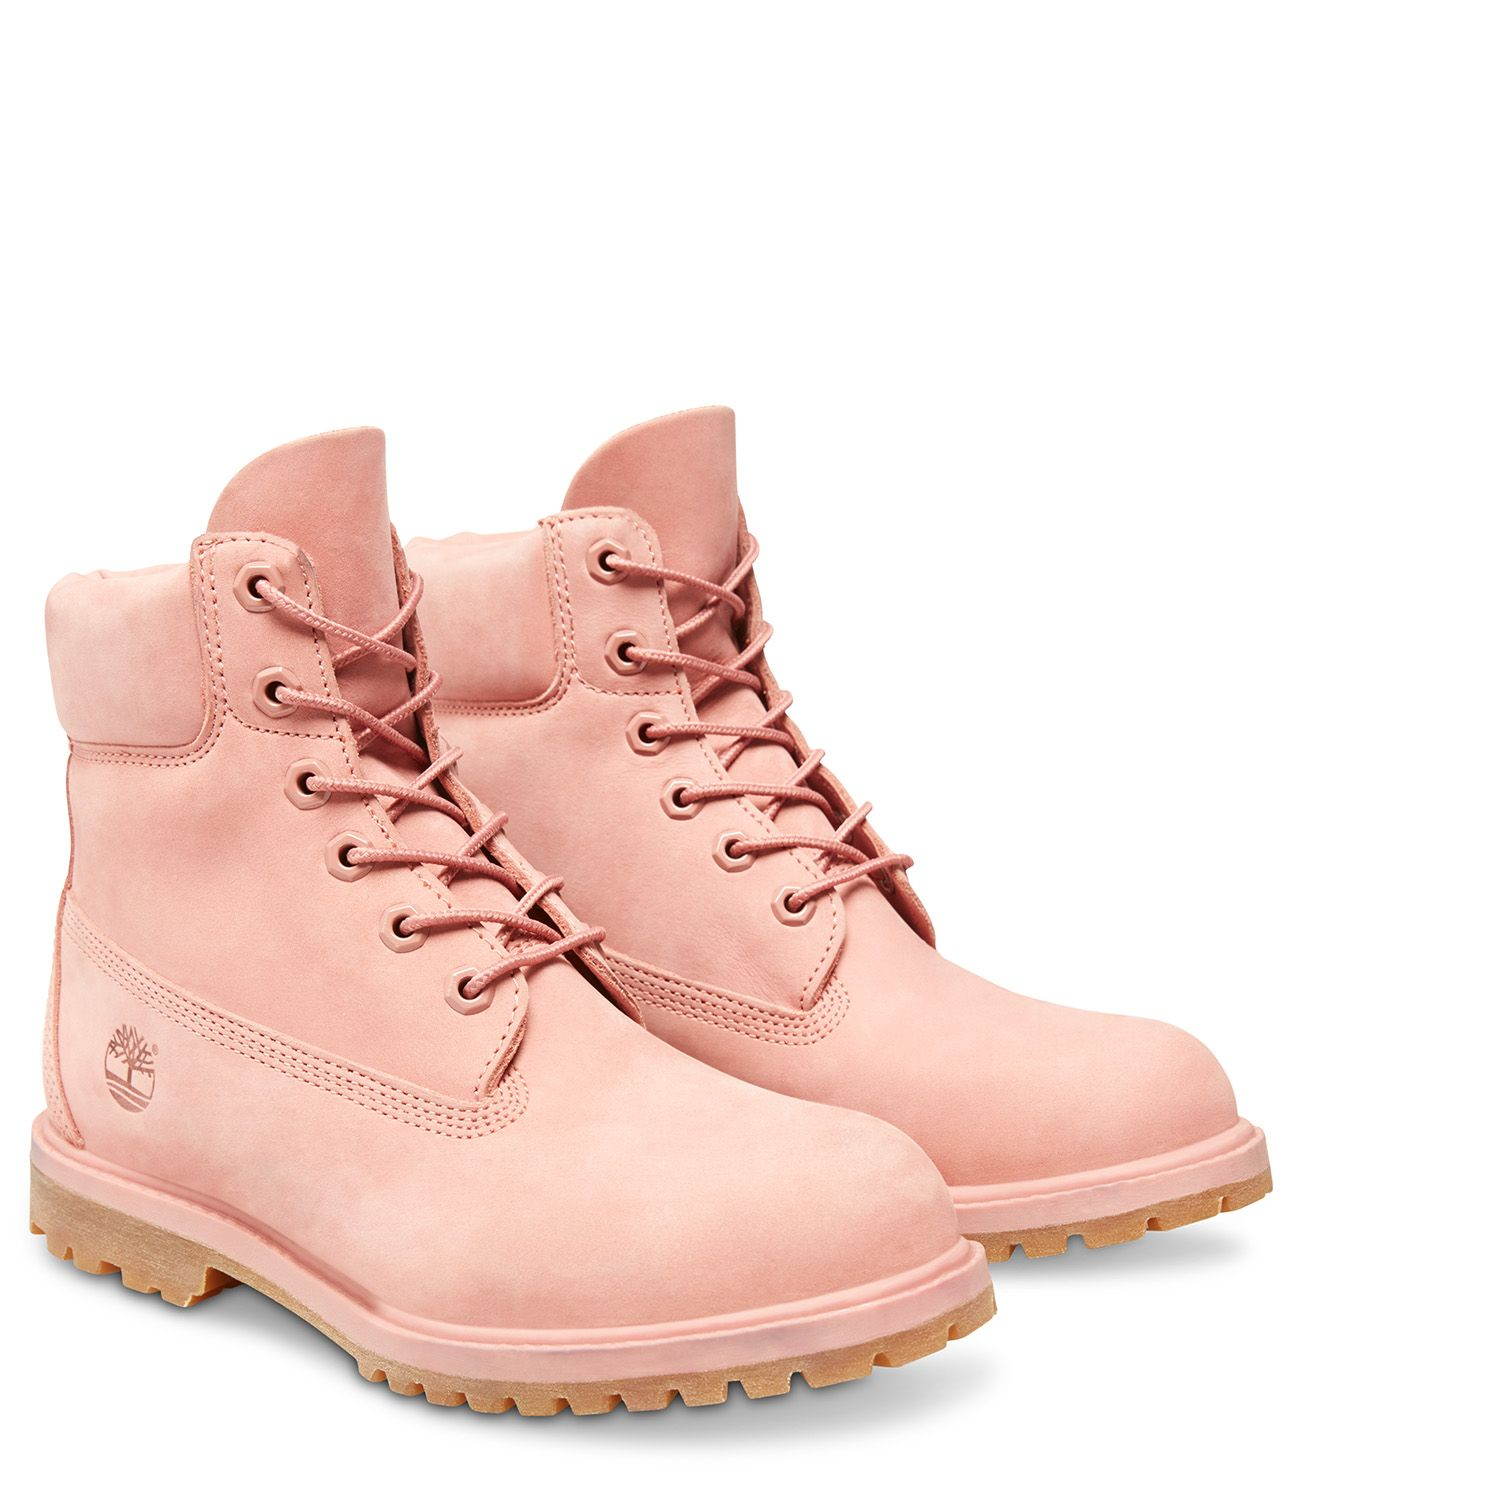 timberland femme rose poudré